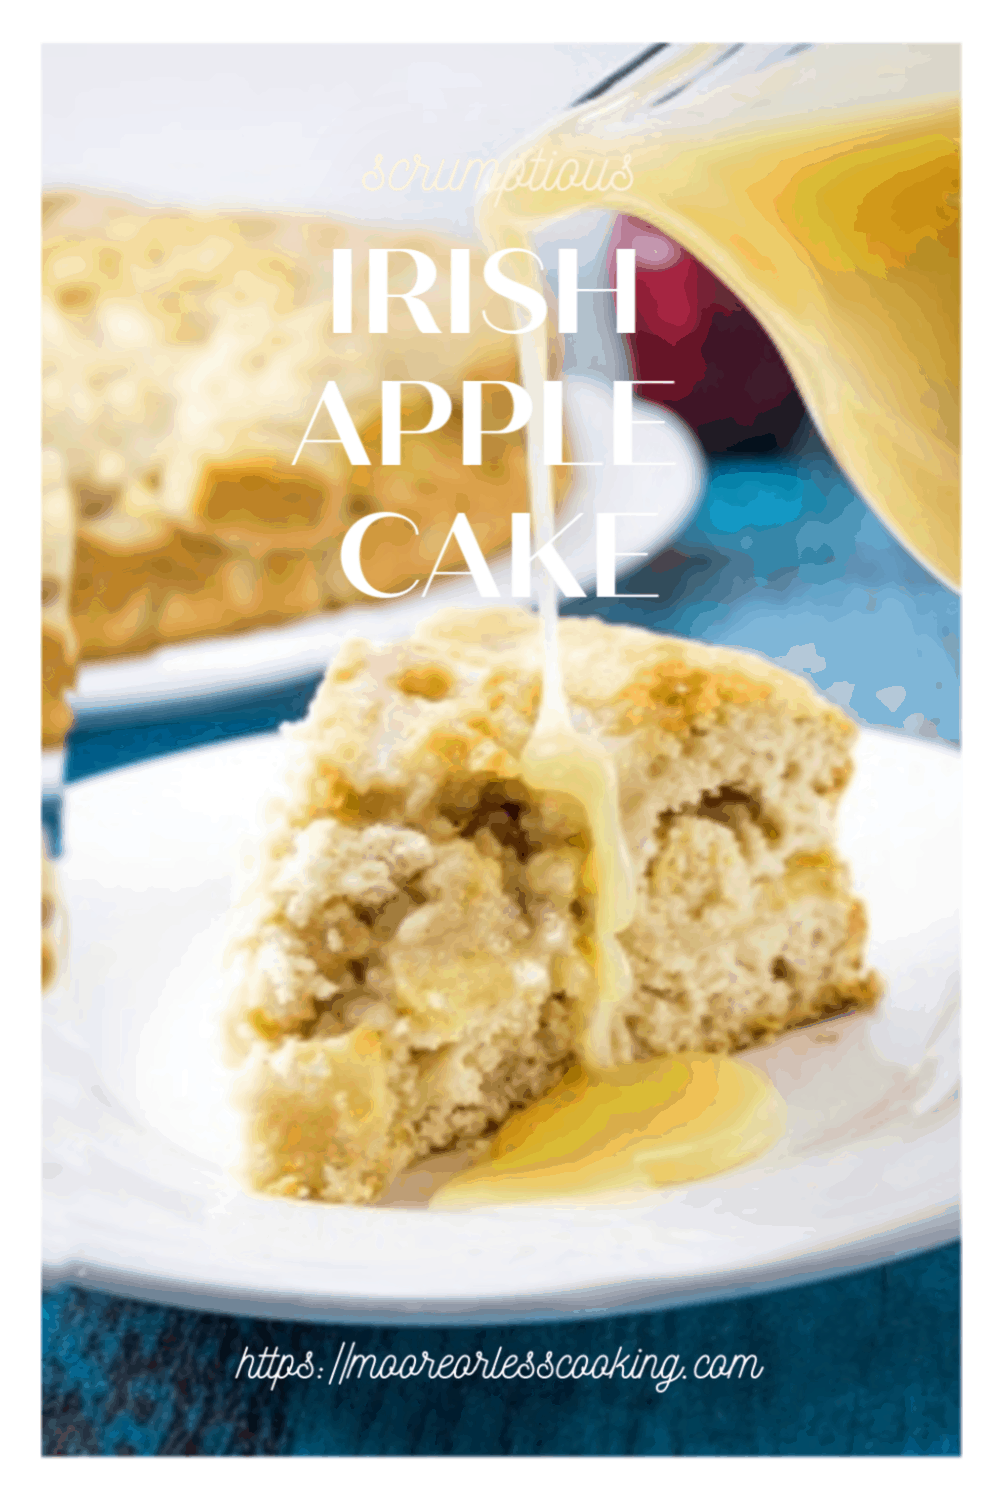 Irish Apple Cake is a deliciously moist cake with a surprise crunchy top and a rich whiskey cream sauce drizzled all over. #Irish #Irishapplecake #applecake #whiskeycreamsauce #food #recipes #dessert #mooreorlesscooking via @Mooreorlesscook